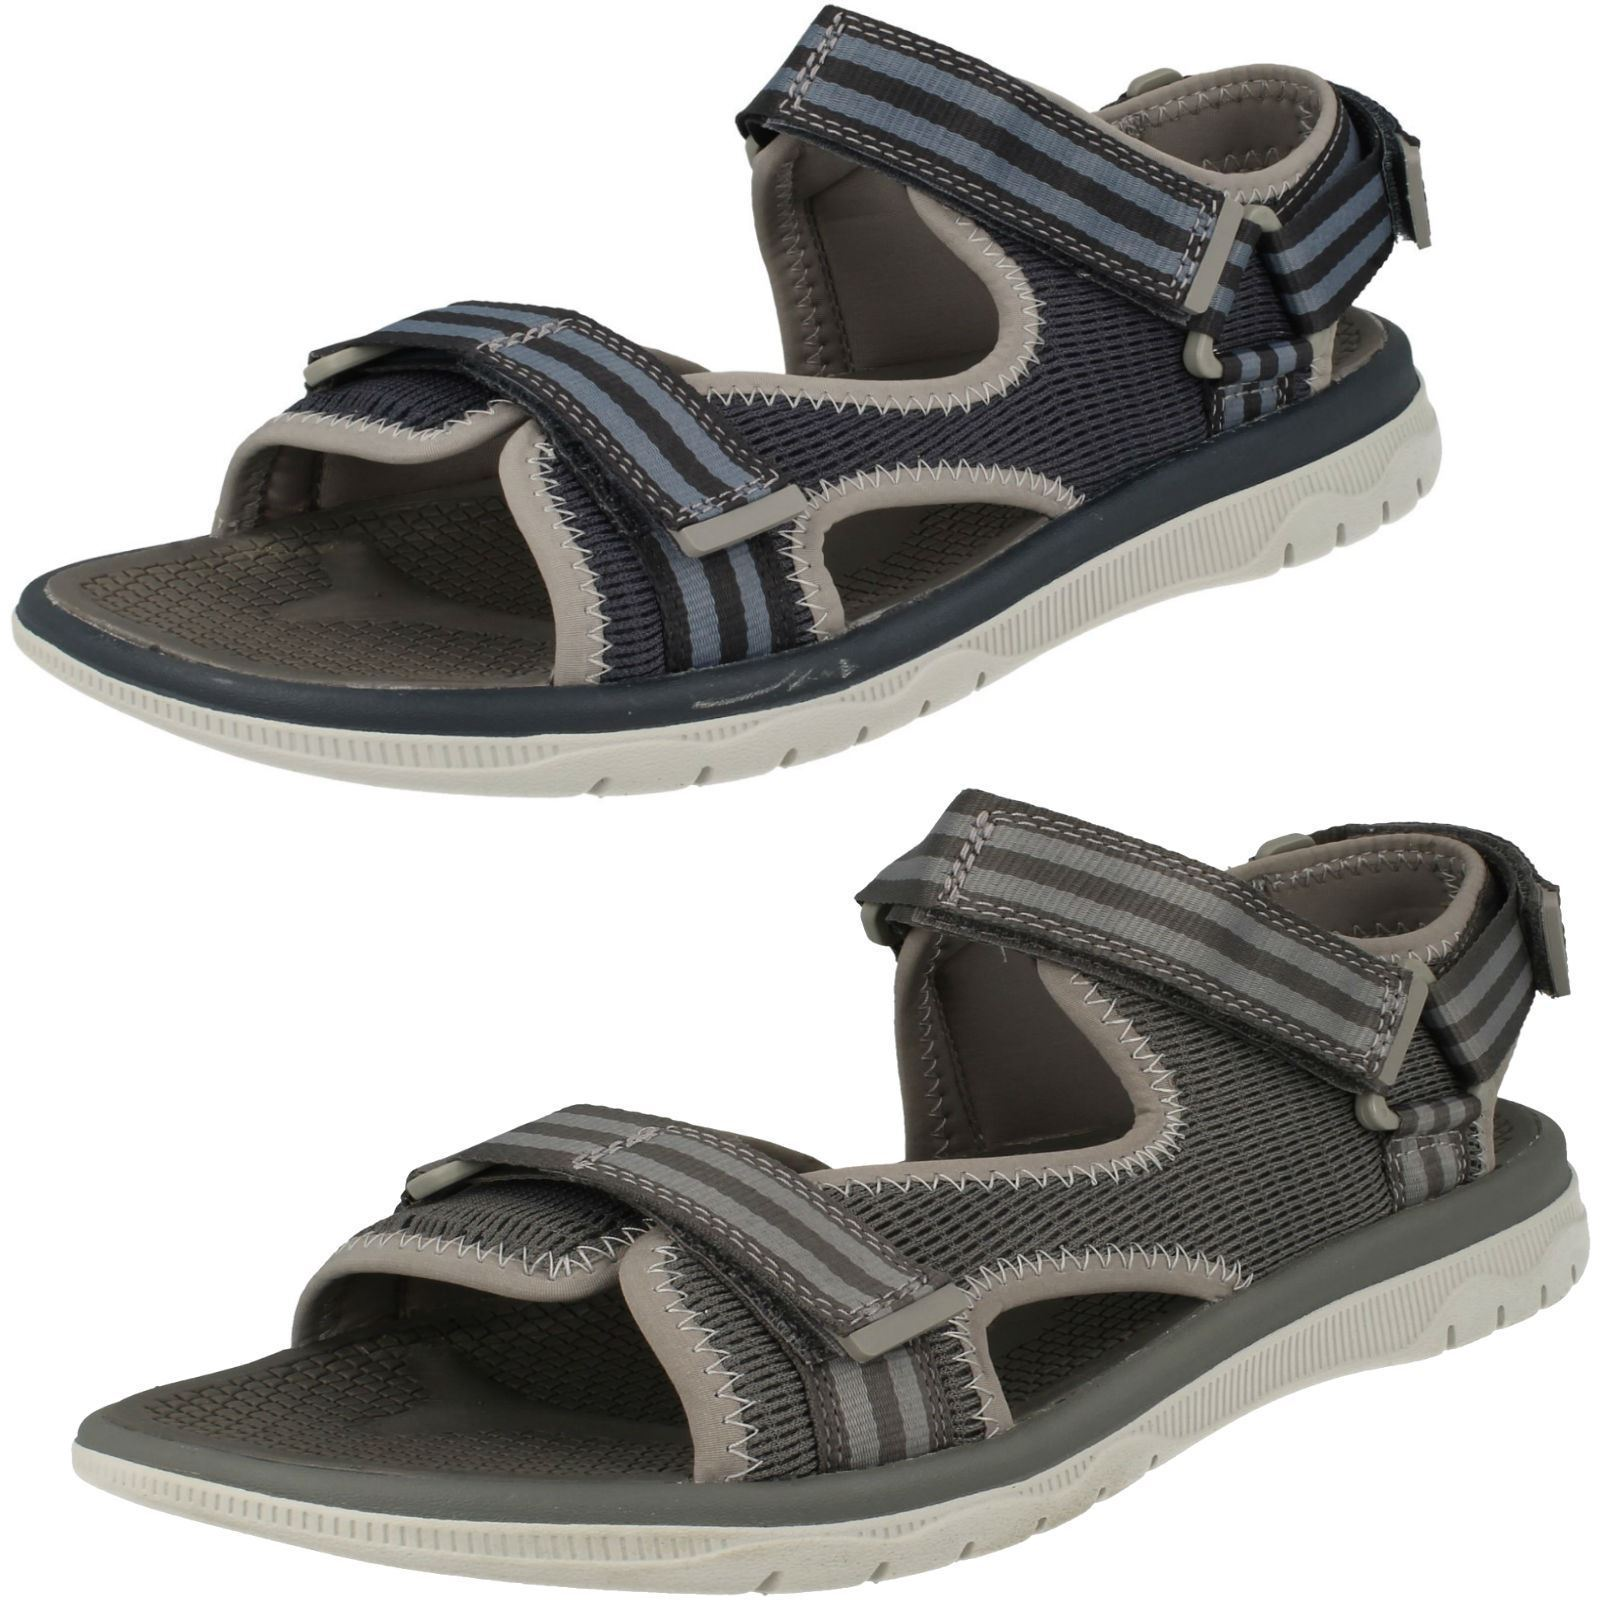 Mens Cloudsteppers by Clarks Sandals - Balta Sky